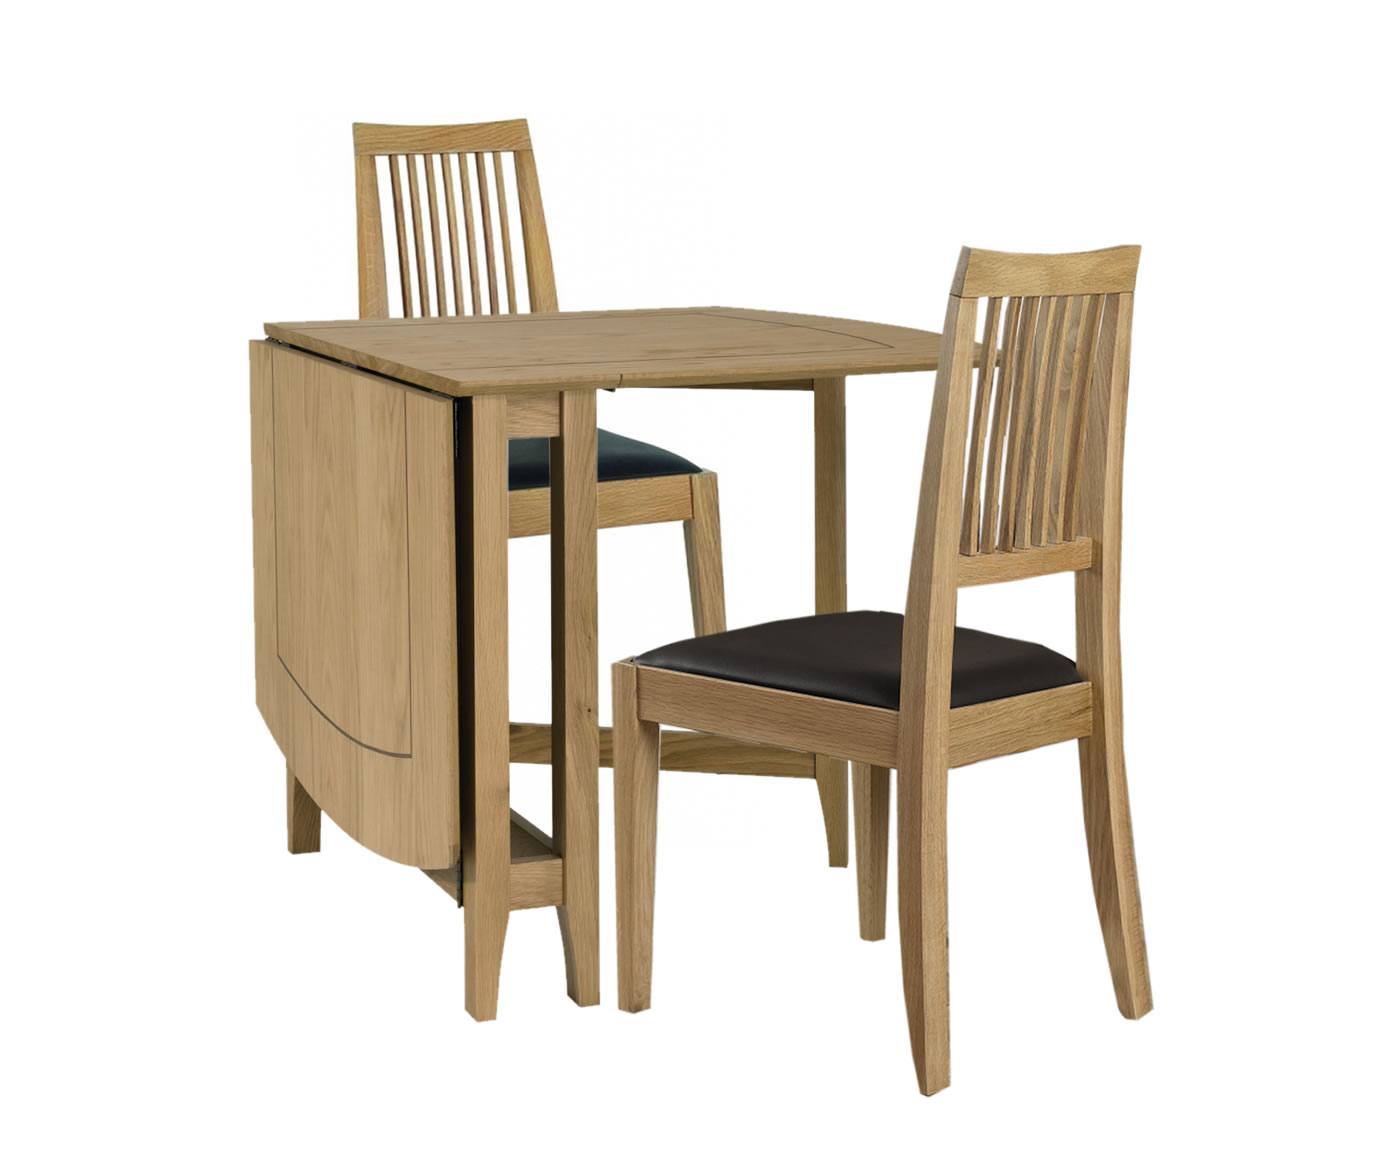 Dining table gateleg dining table sets - Gateleg table and chairs ...